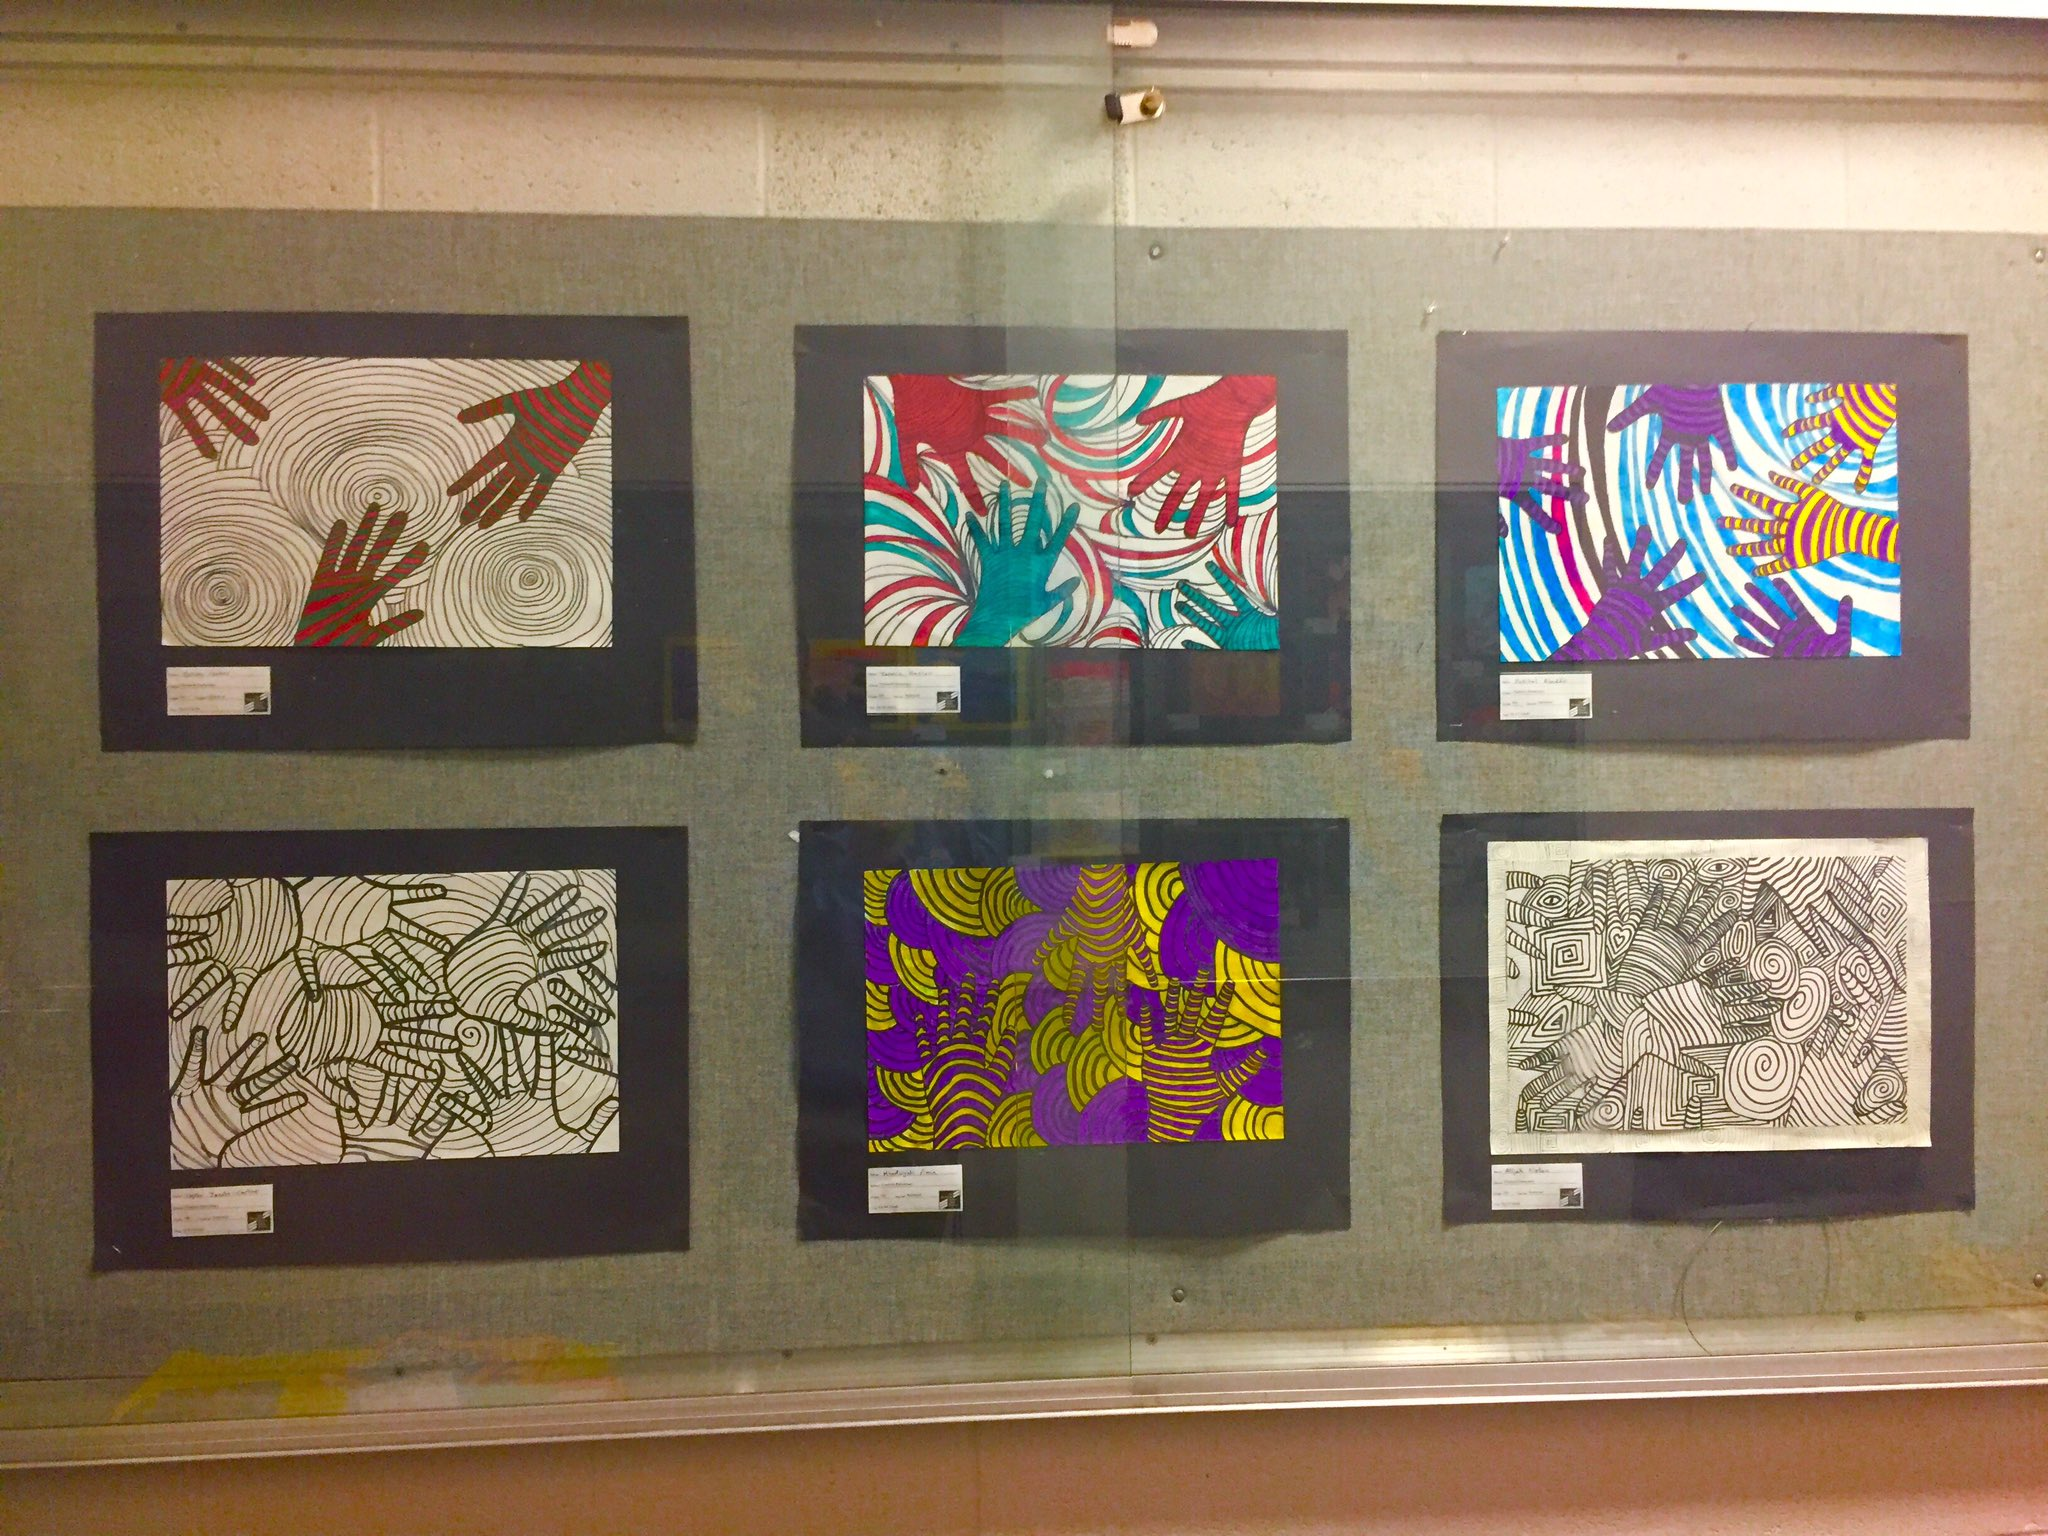 Op art uses color to create - Paul Redmond On Twitter Chadwick Es 5th 4th Gr Use Line Shape Color To Create Op Art Displayed Secsqmall Incredible Talent Visualartsbcps